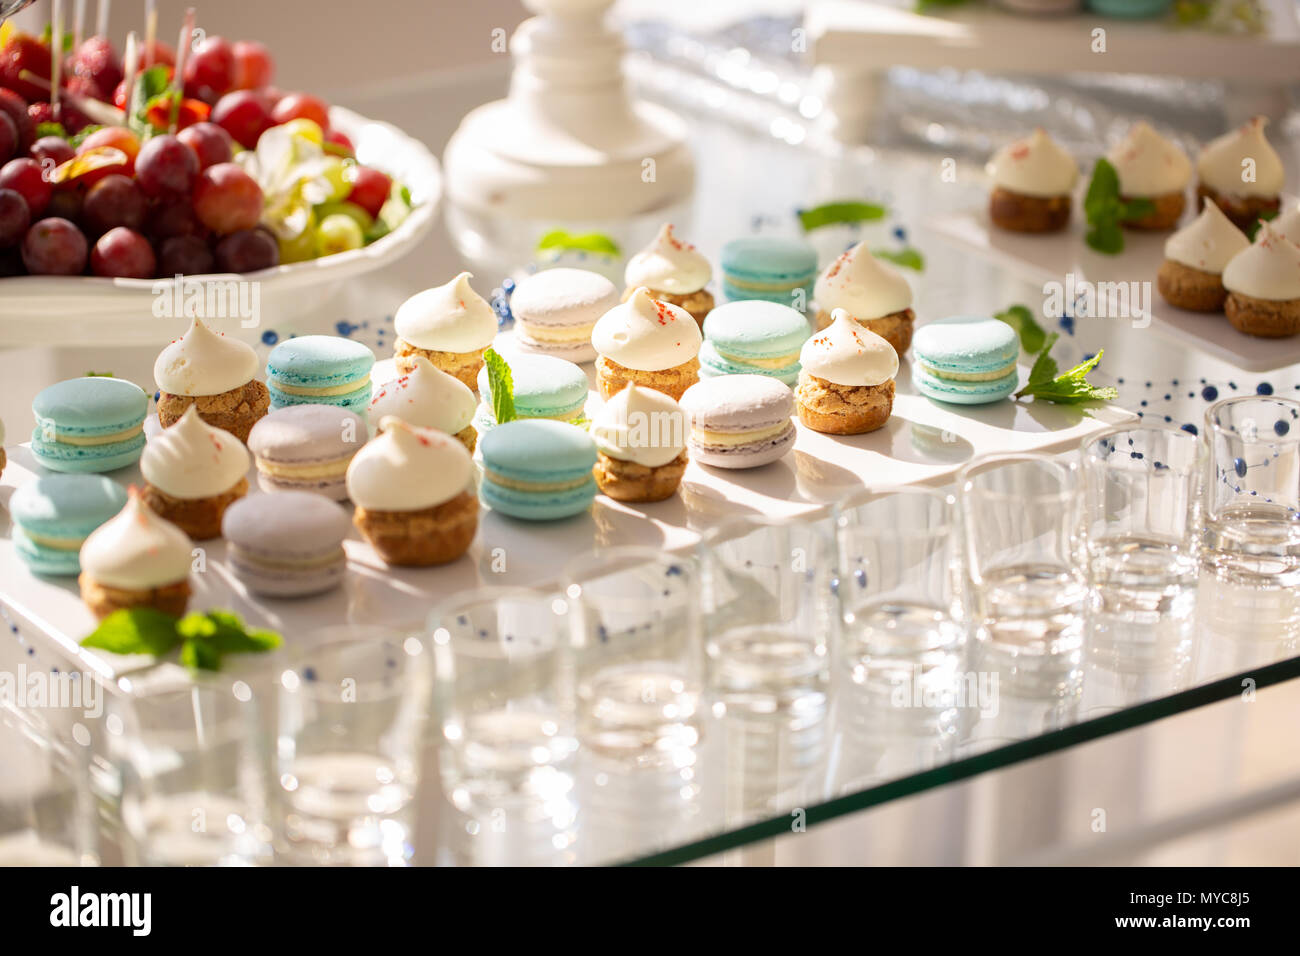 Delicious Macaroons And Cupcakes On Table At Wedding Reception